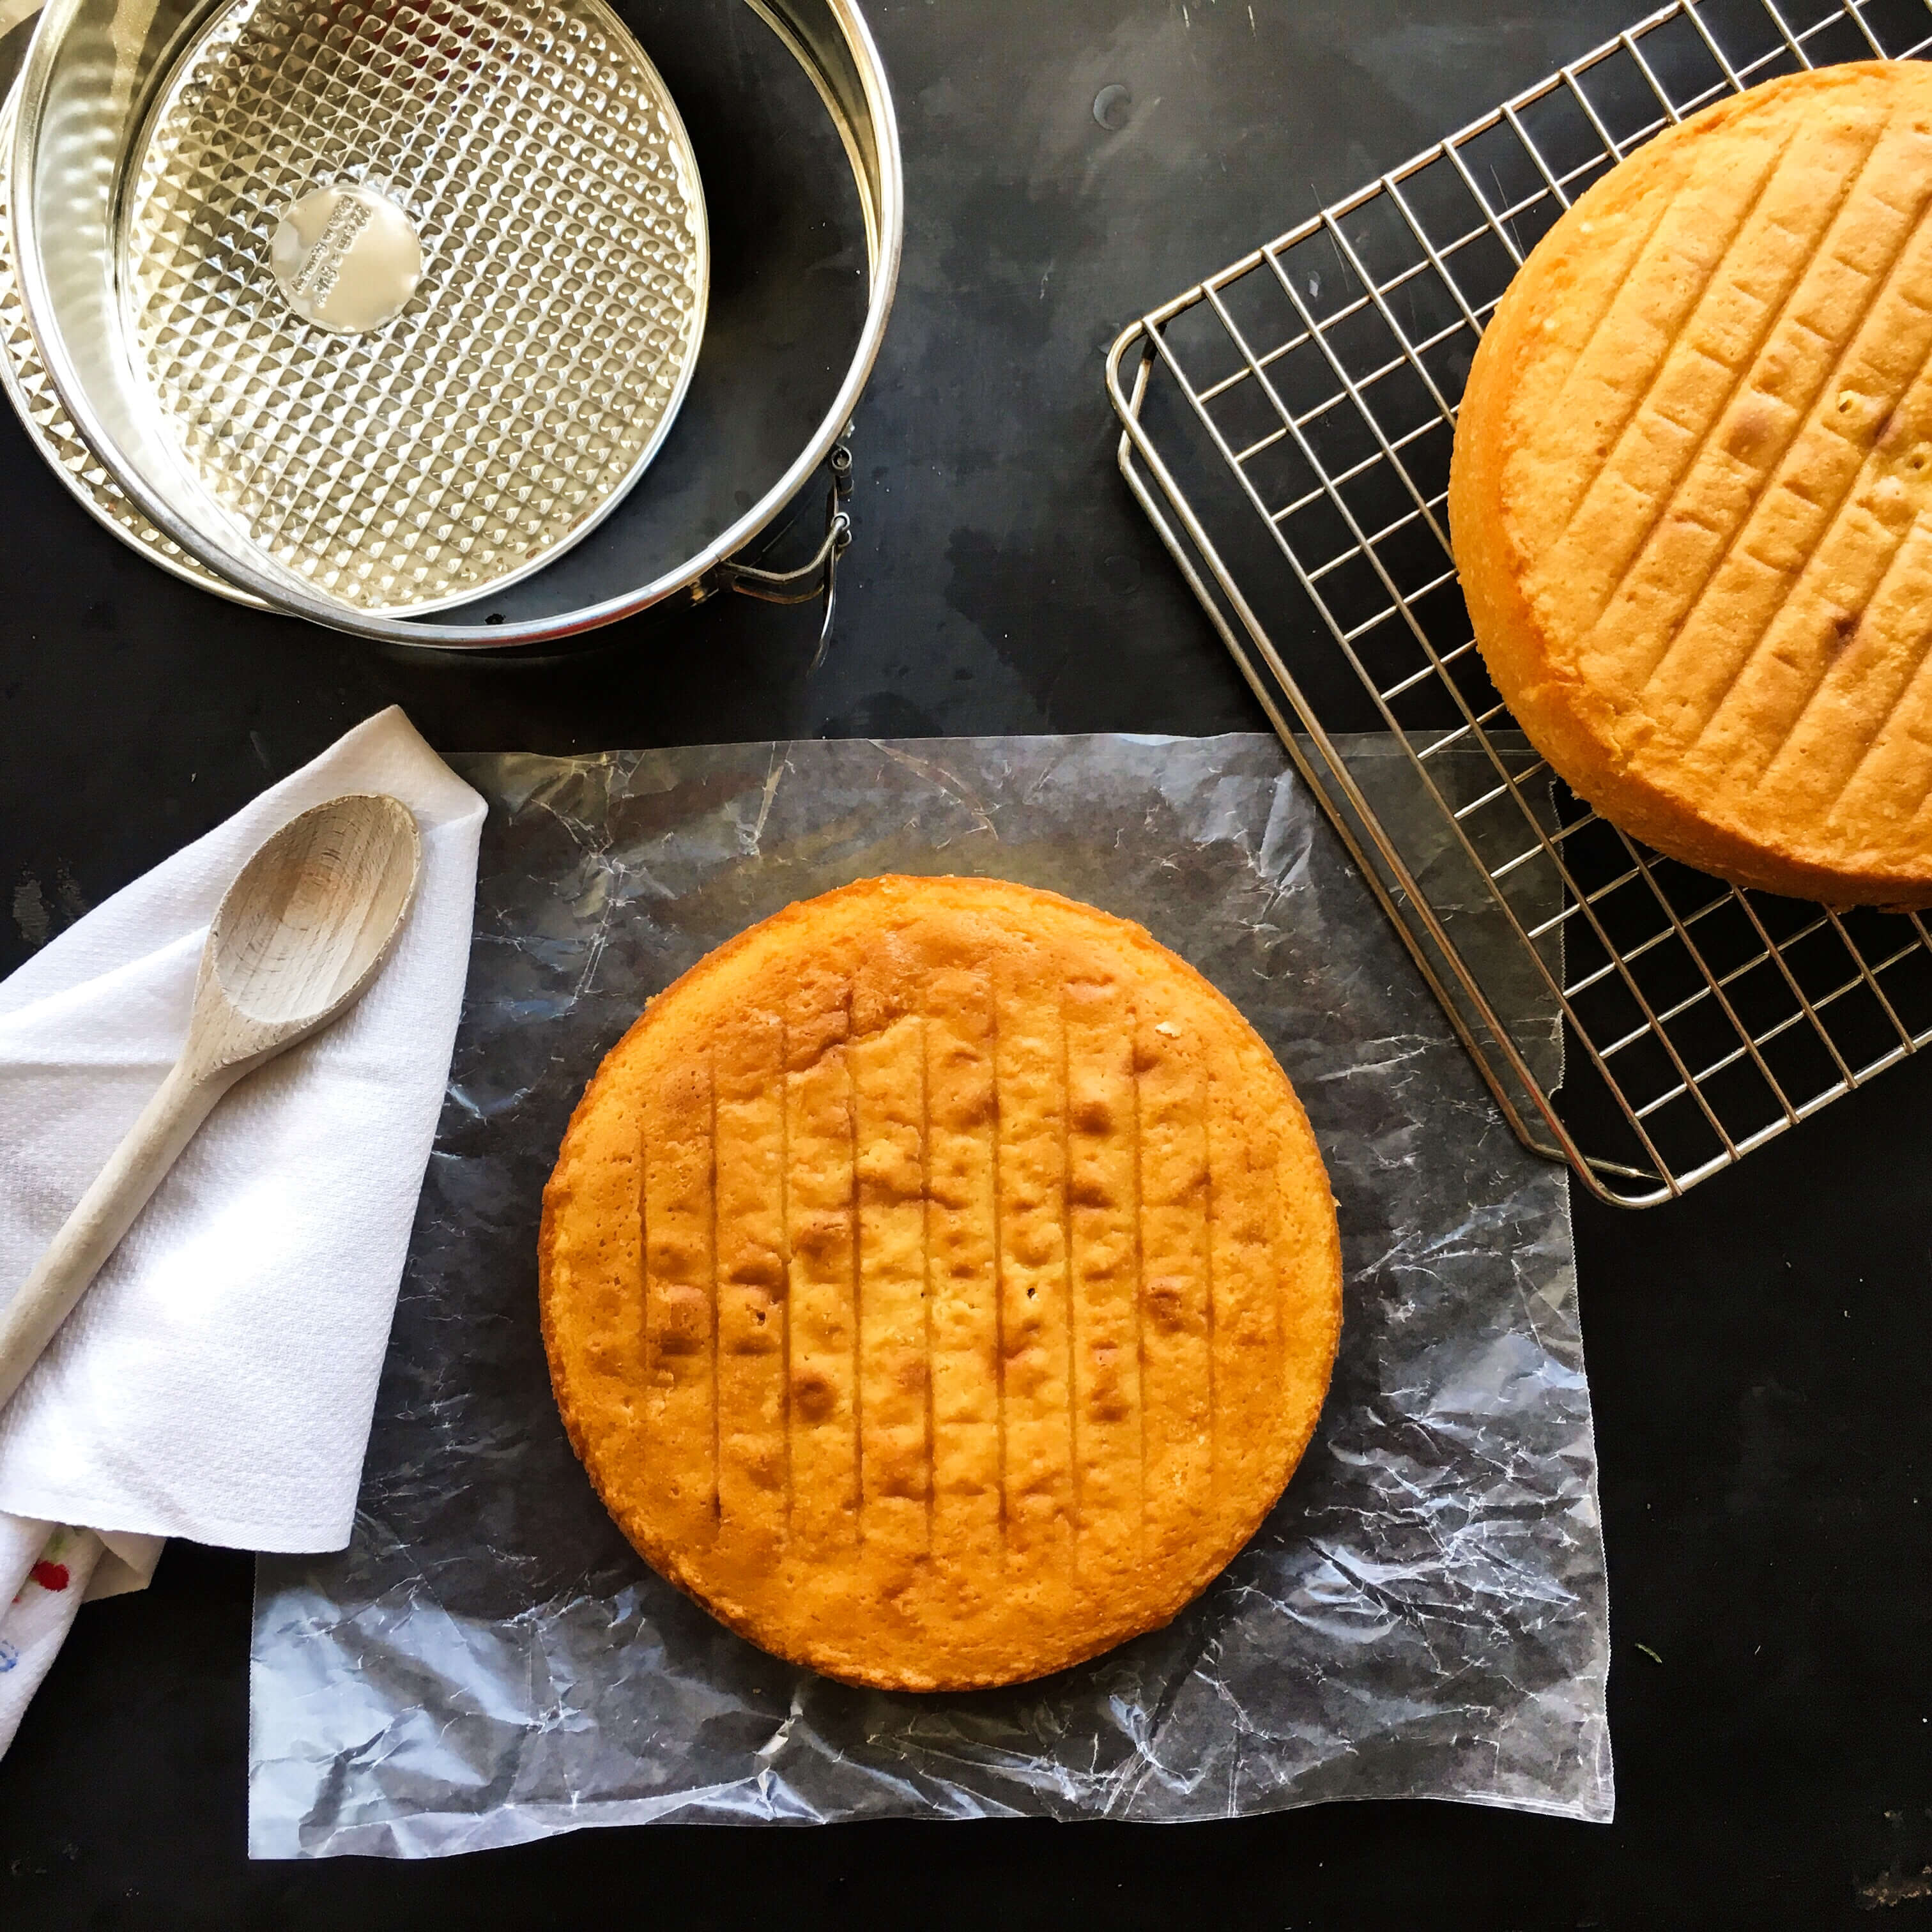 I Used Martha Stewarts Butter Cake Recipe Which Turned Out Great Because It Baked Flat And Even On All Sides Characteristics You Definitely Want When